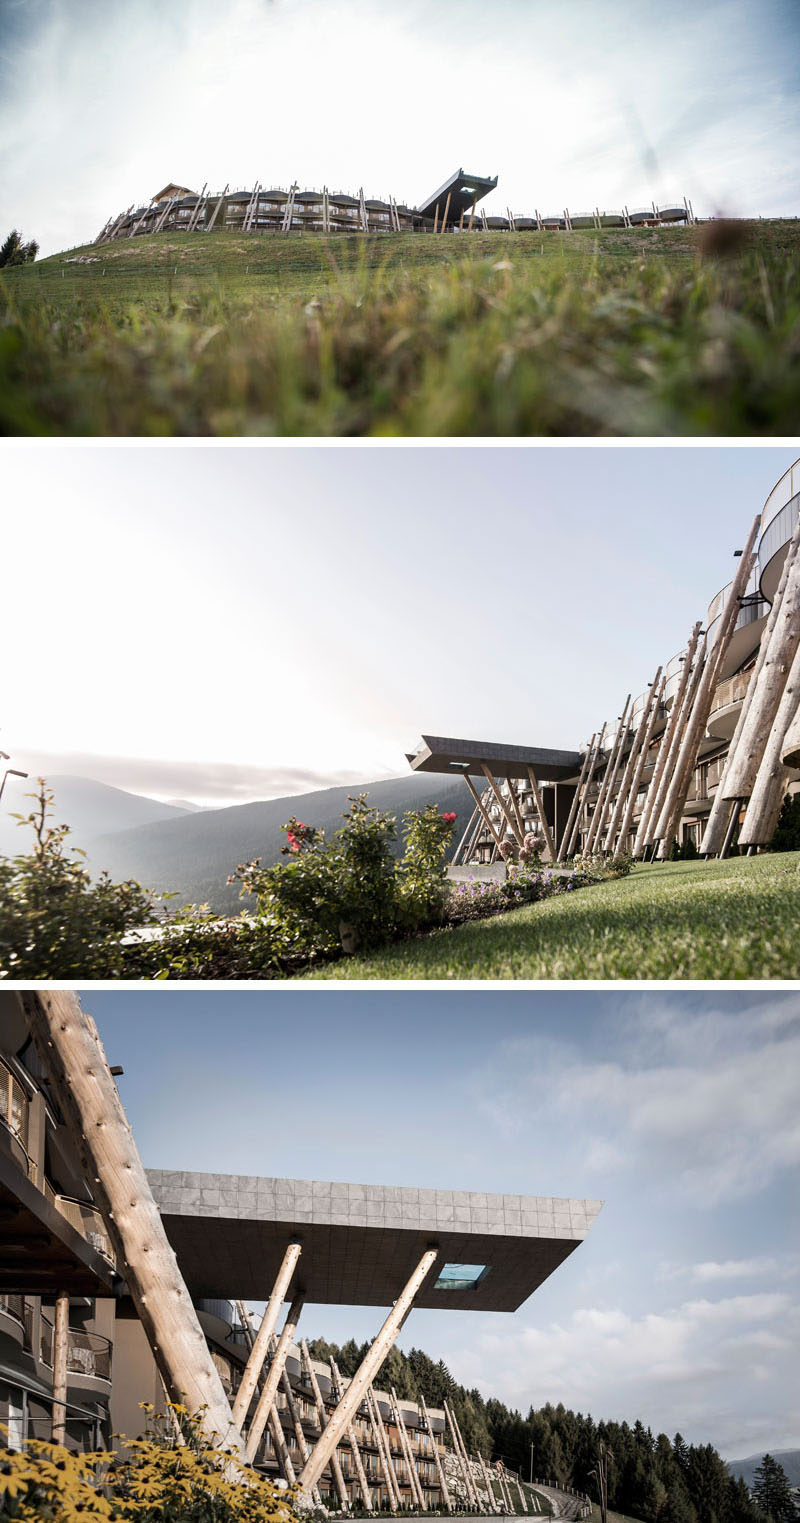 When noa* (network of architecture), were asked to re-design Hotel Hubertus that sits at the foot of a ski and hiking area in Valdaora, Italy, they included a new 82 foot (25m) swimming pool.